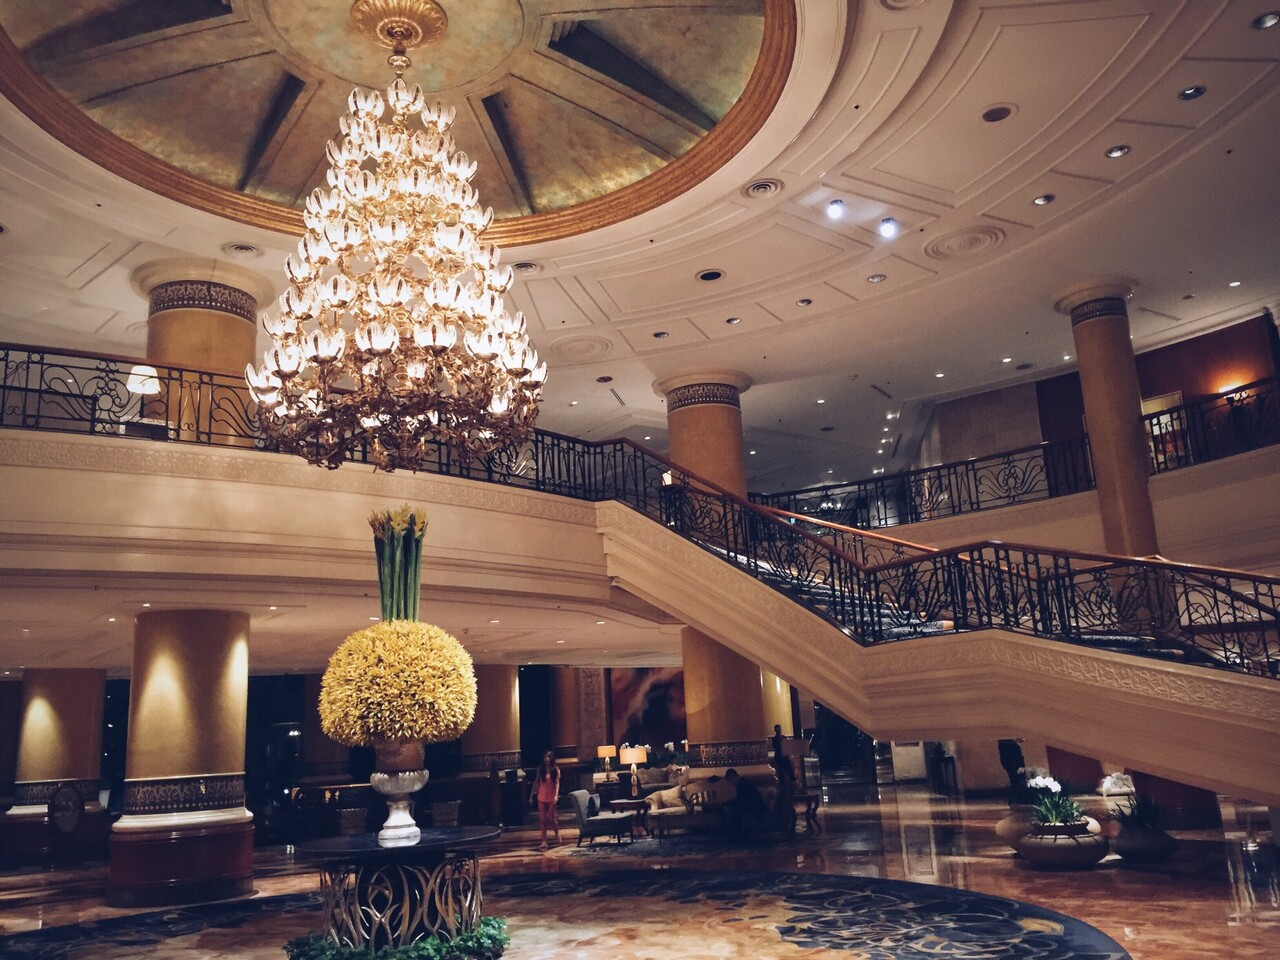 6 Ways Hotels Can Minimize Costs During The Pandemic